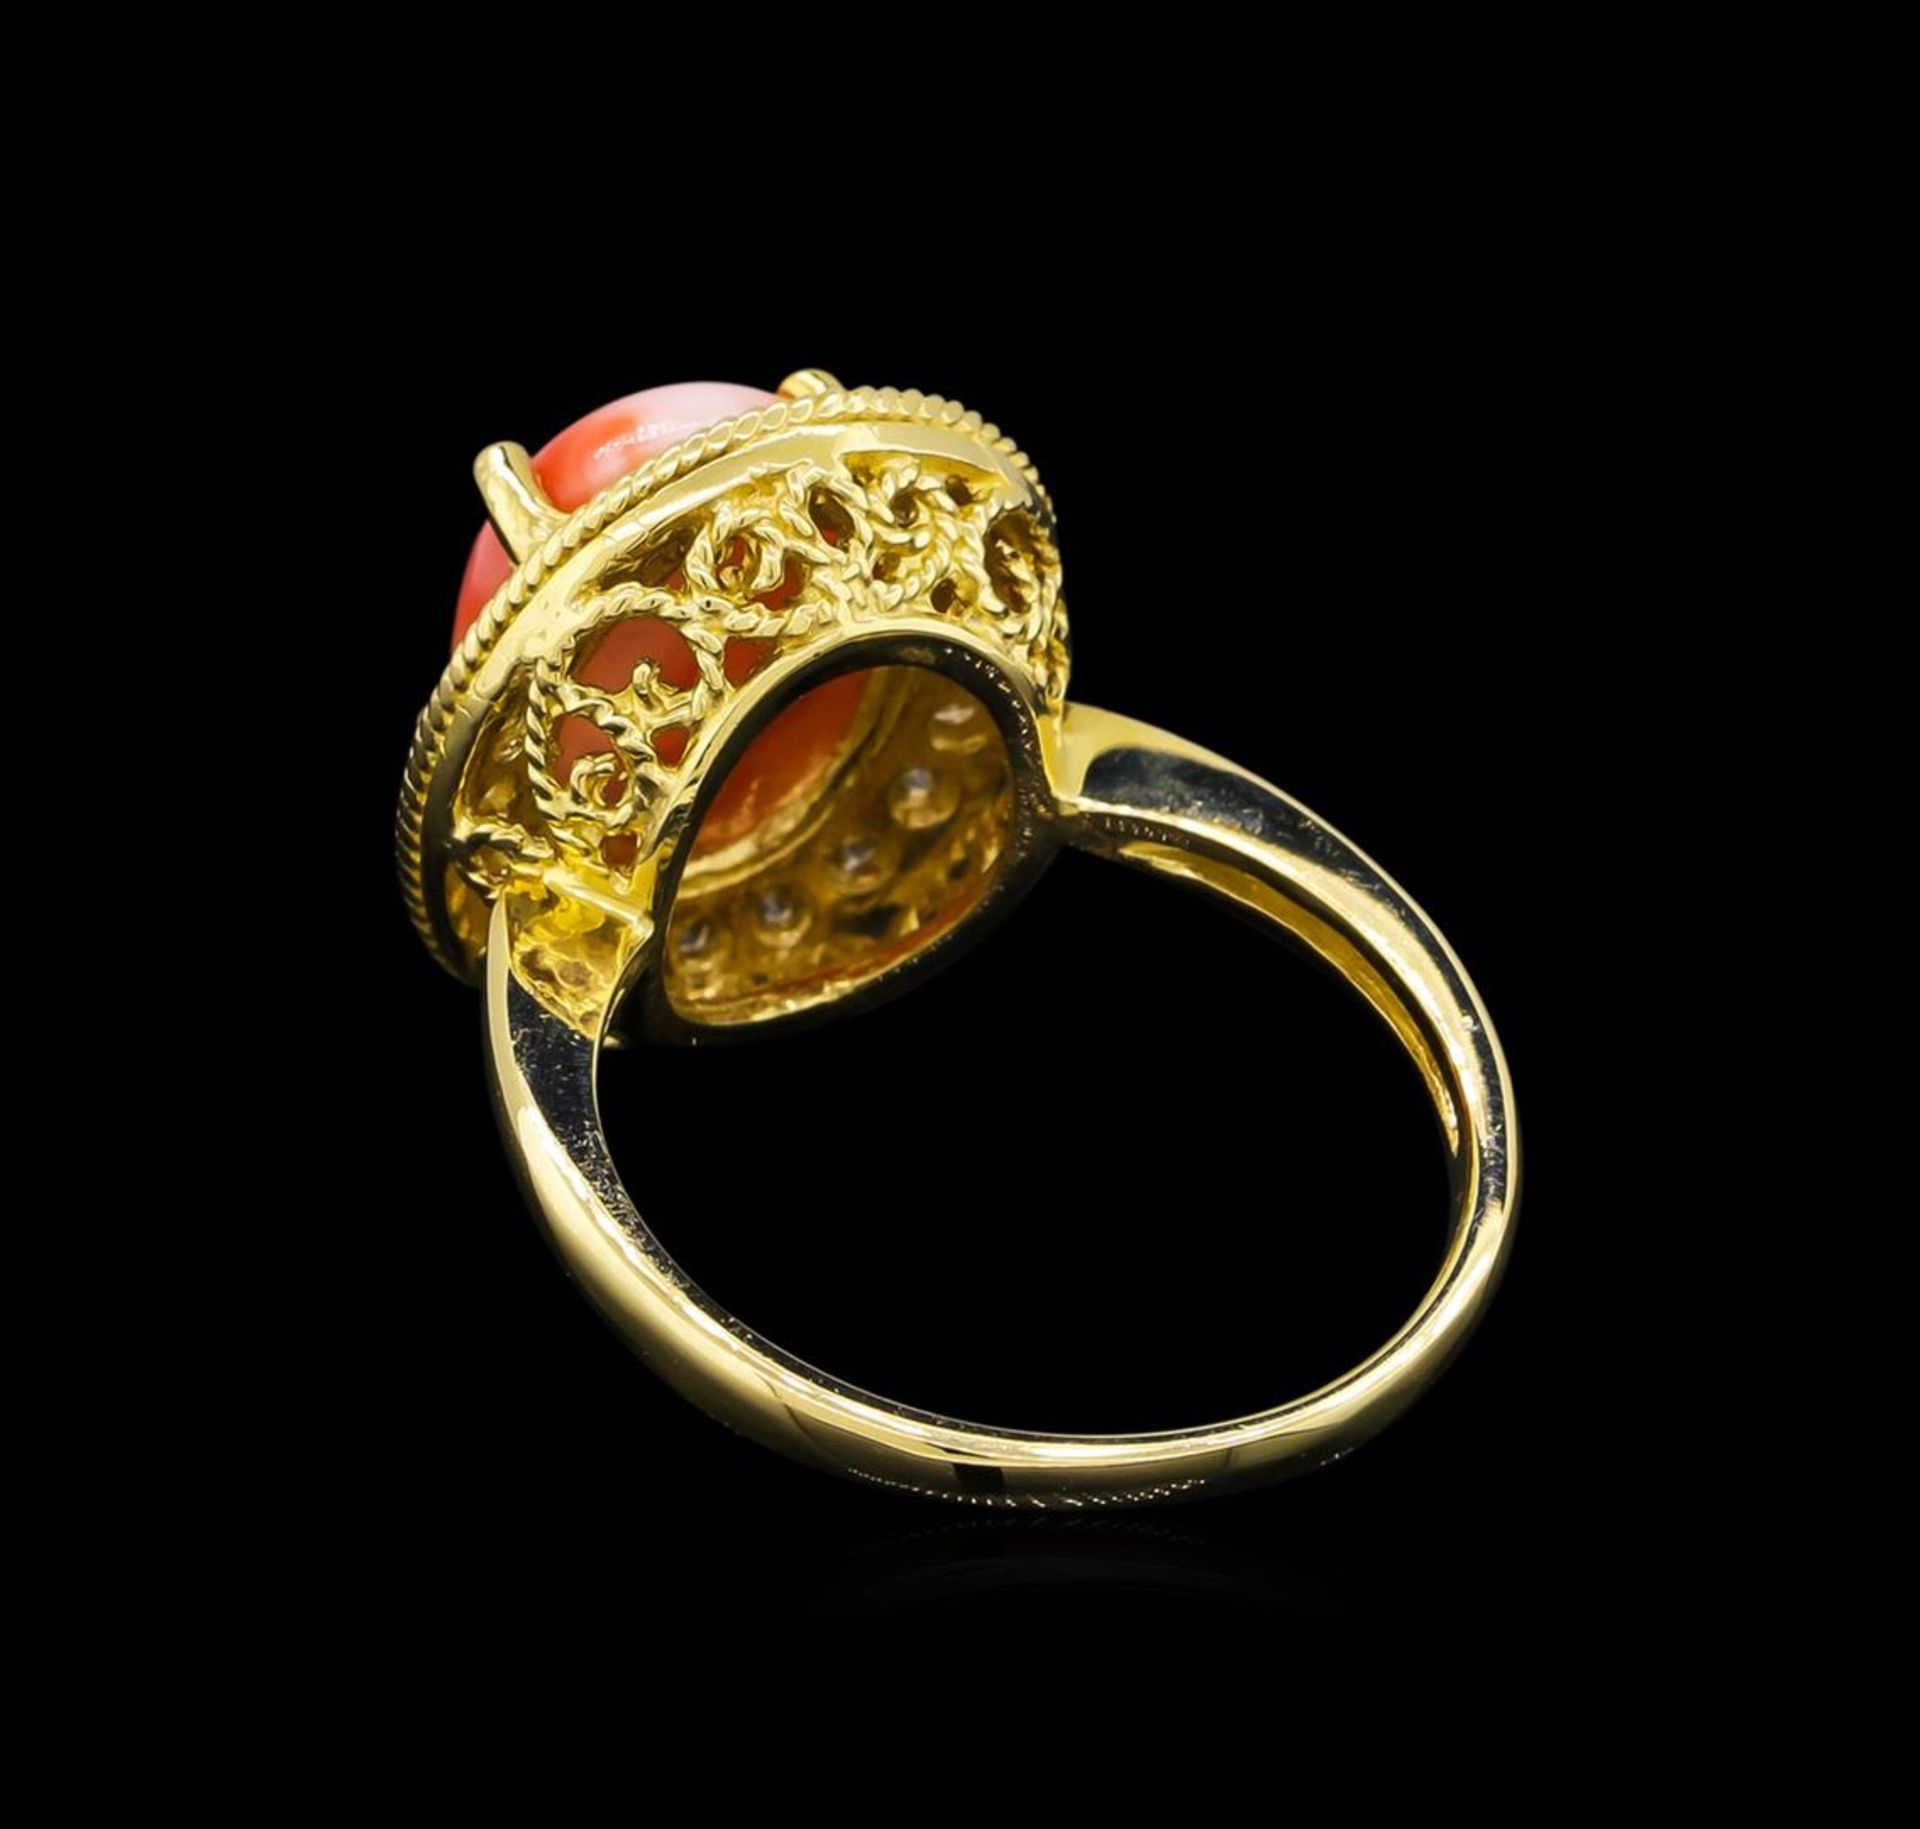 14KT Yellow Gold 3.16 ctw Coral and Diamond Ring - Image 3 of 5